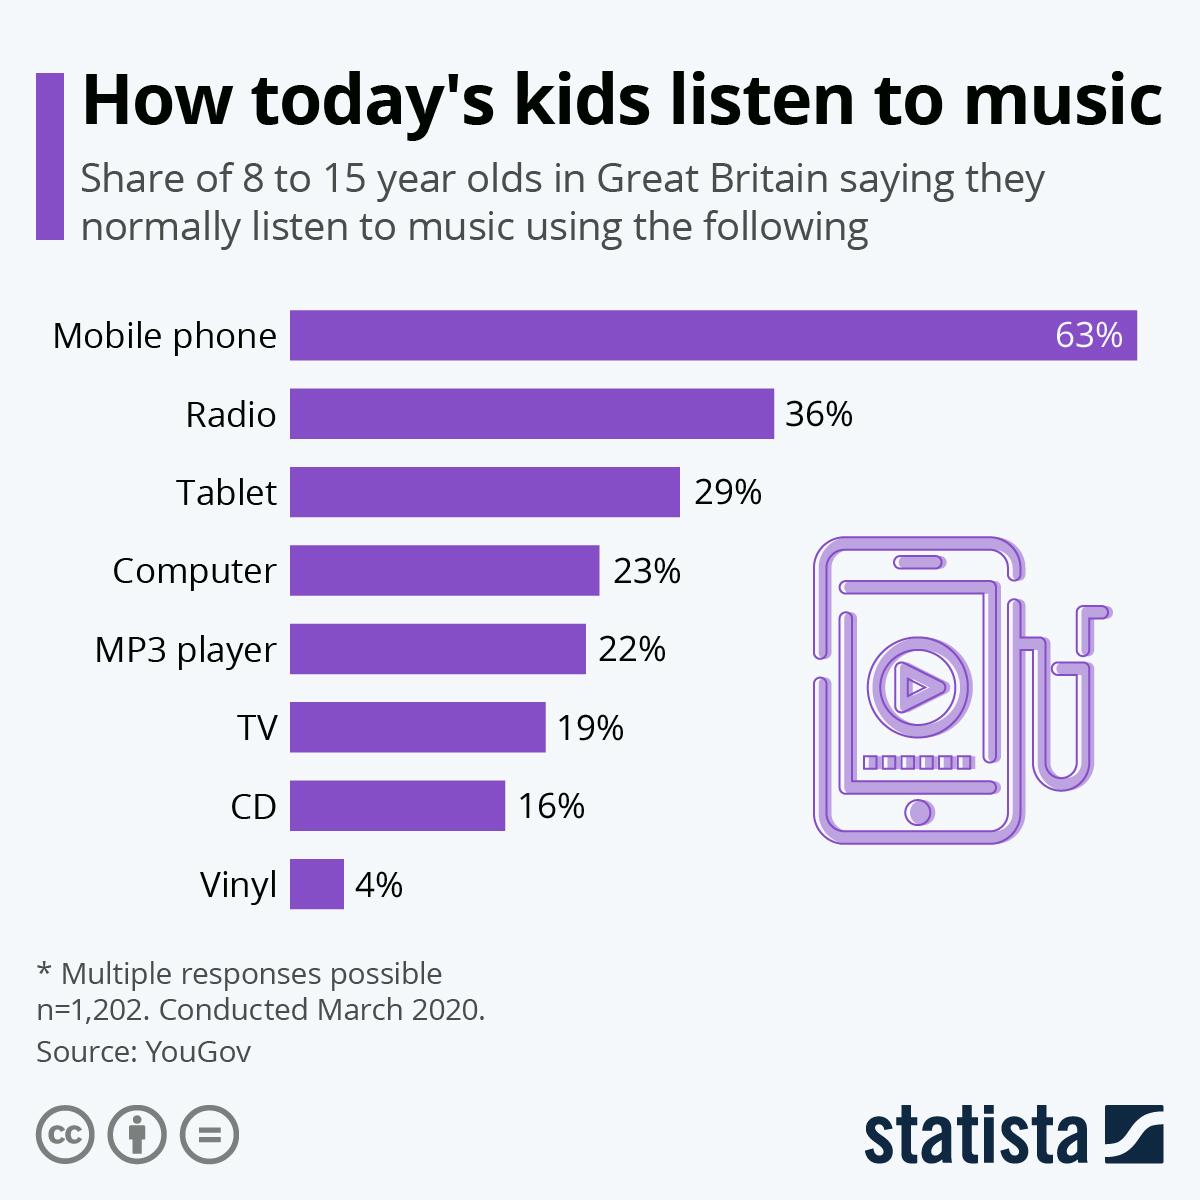 How today's kids listen to music #infographic